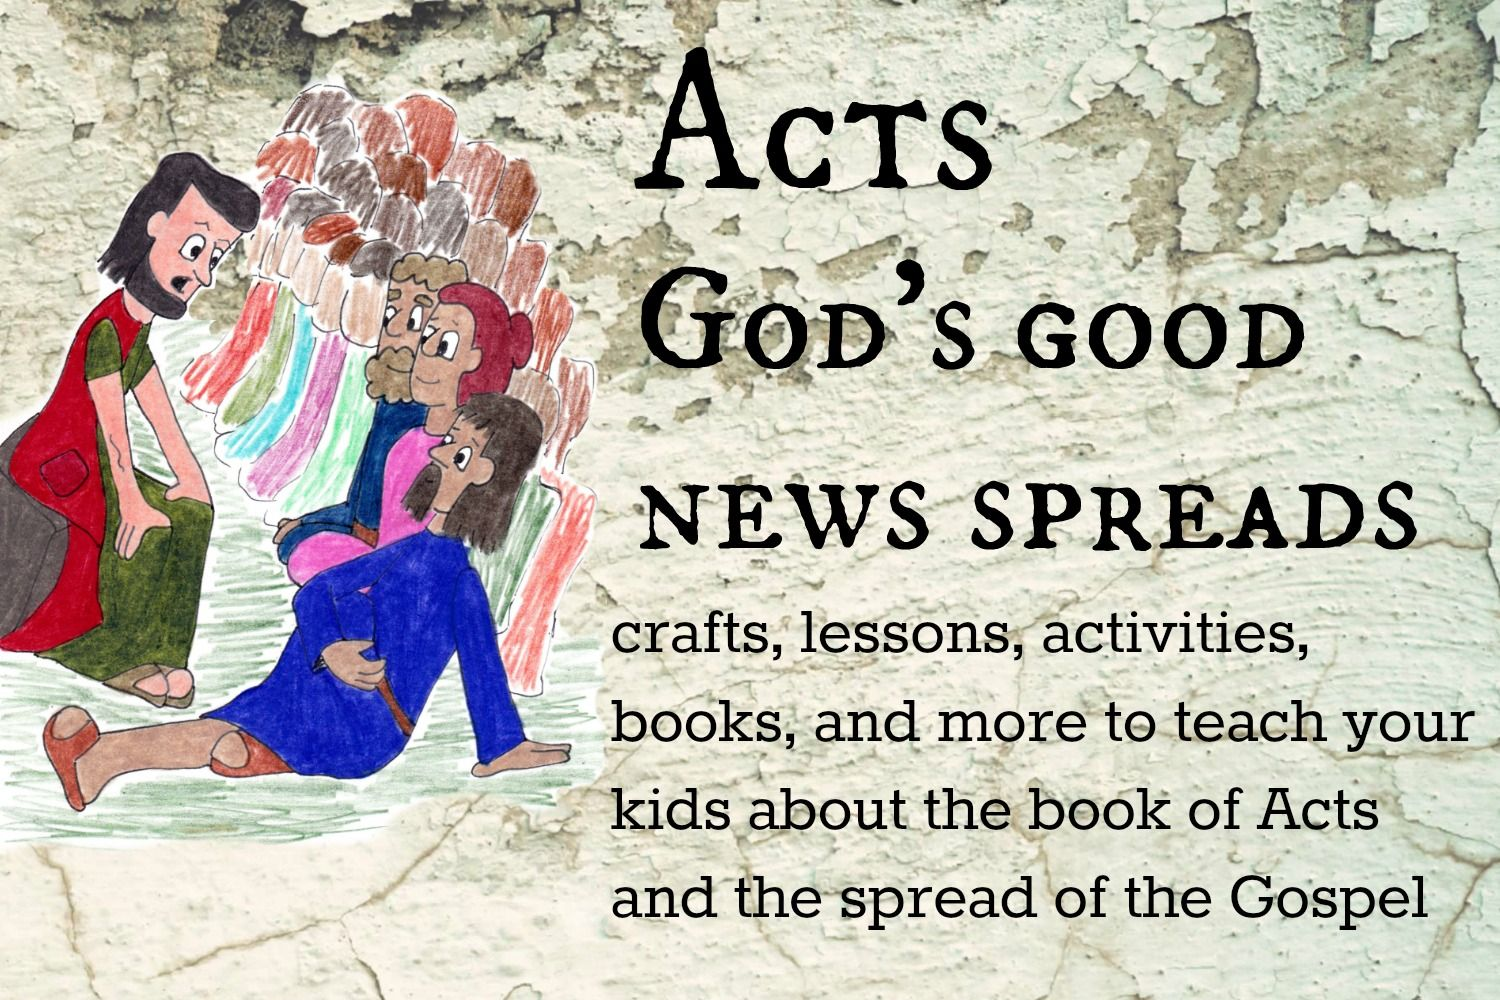 Crafts Lessons And More To Teach Your Kids About The Book Of Acts For Kids